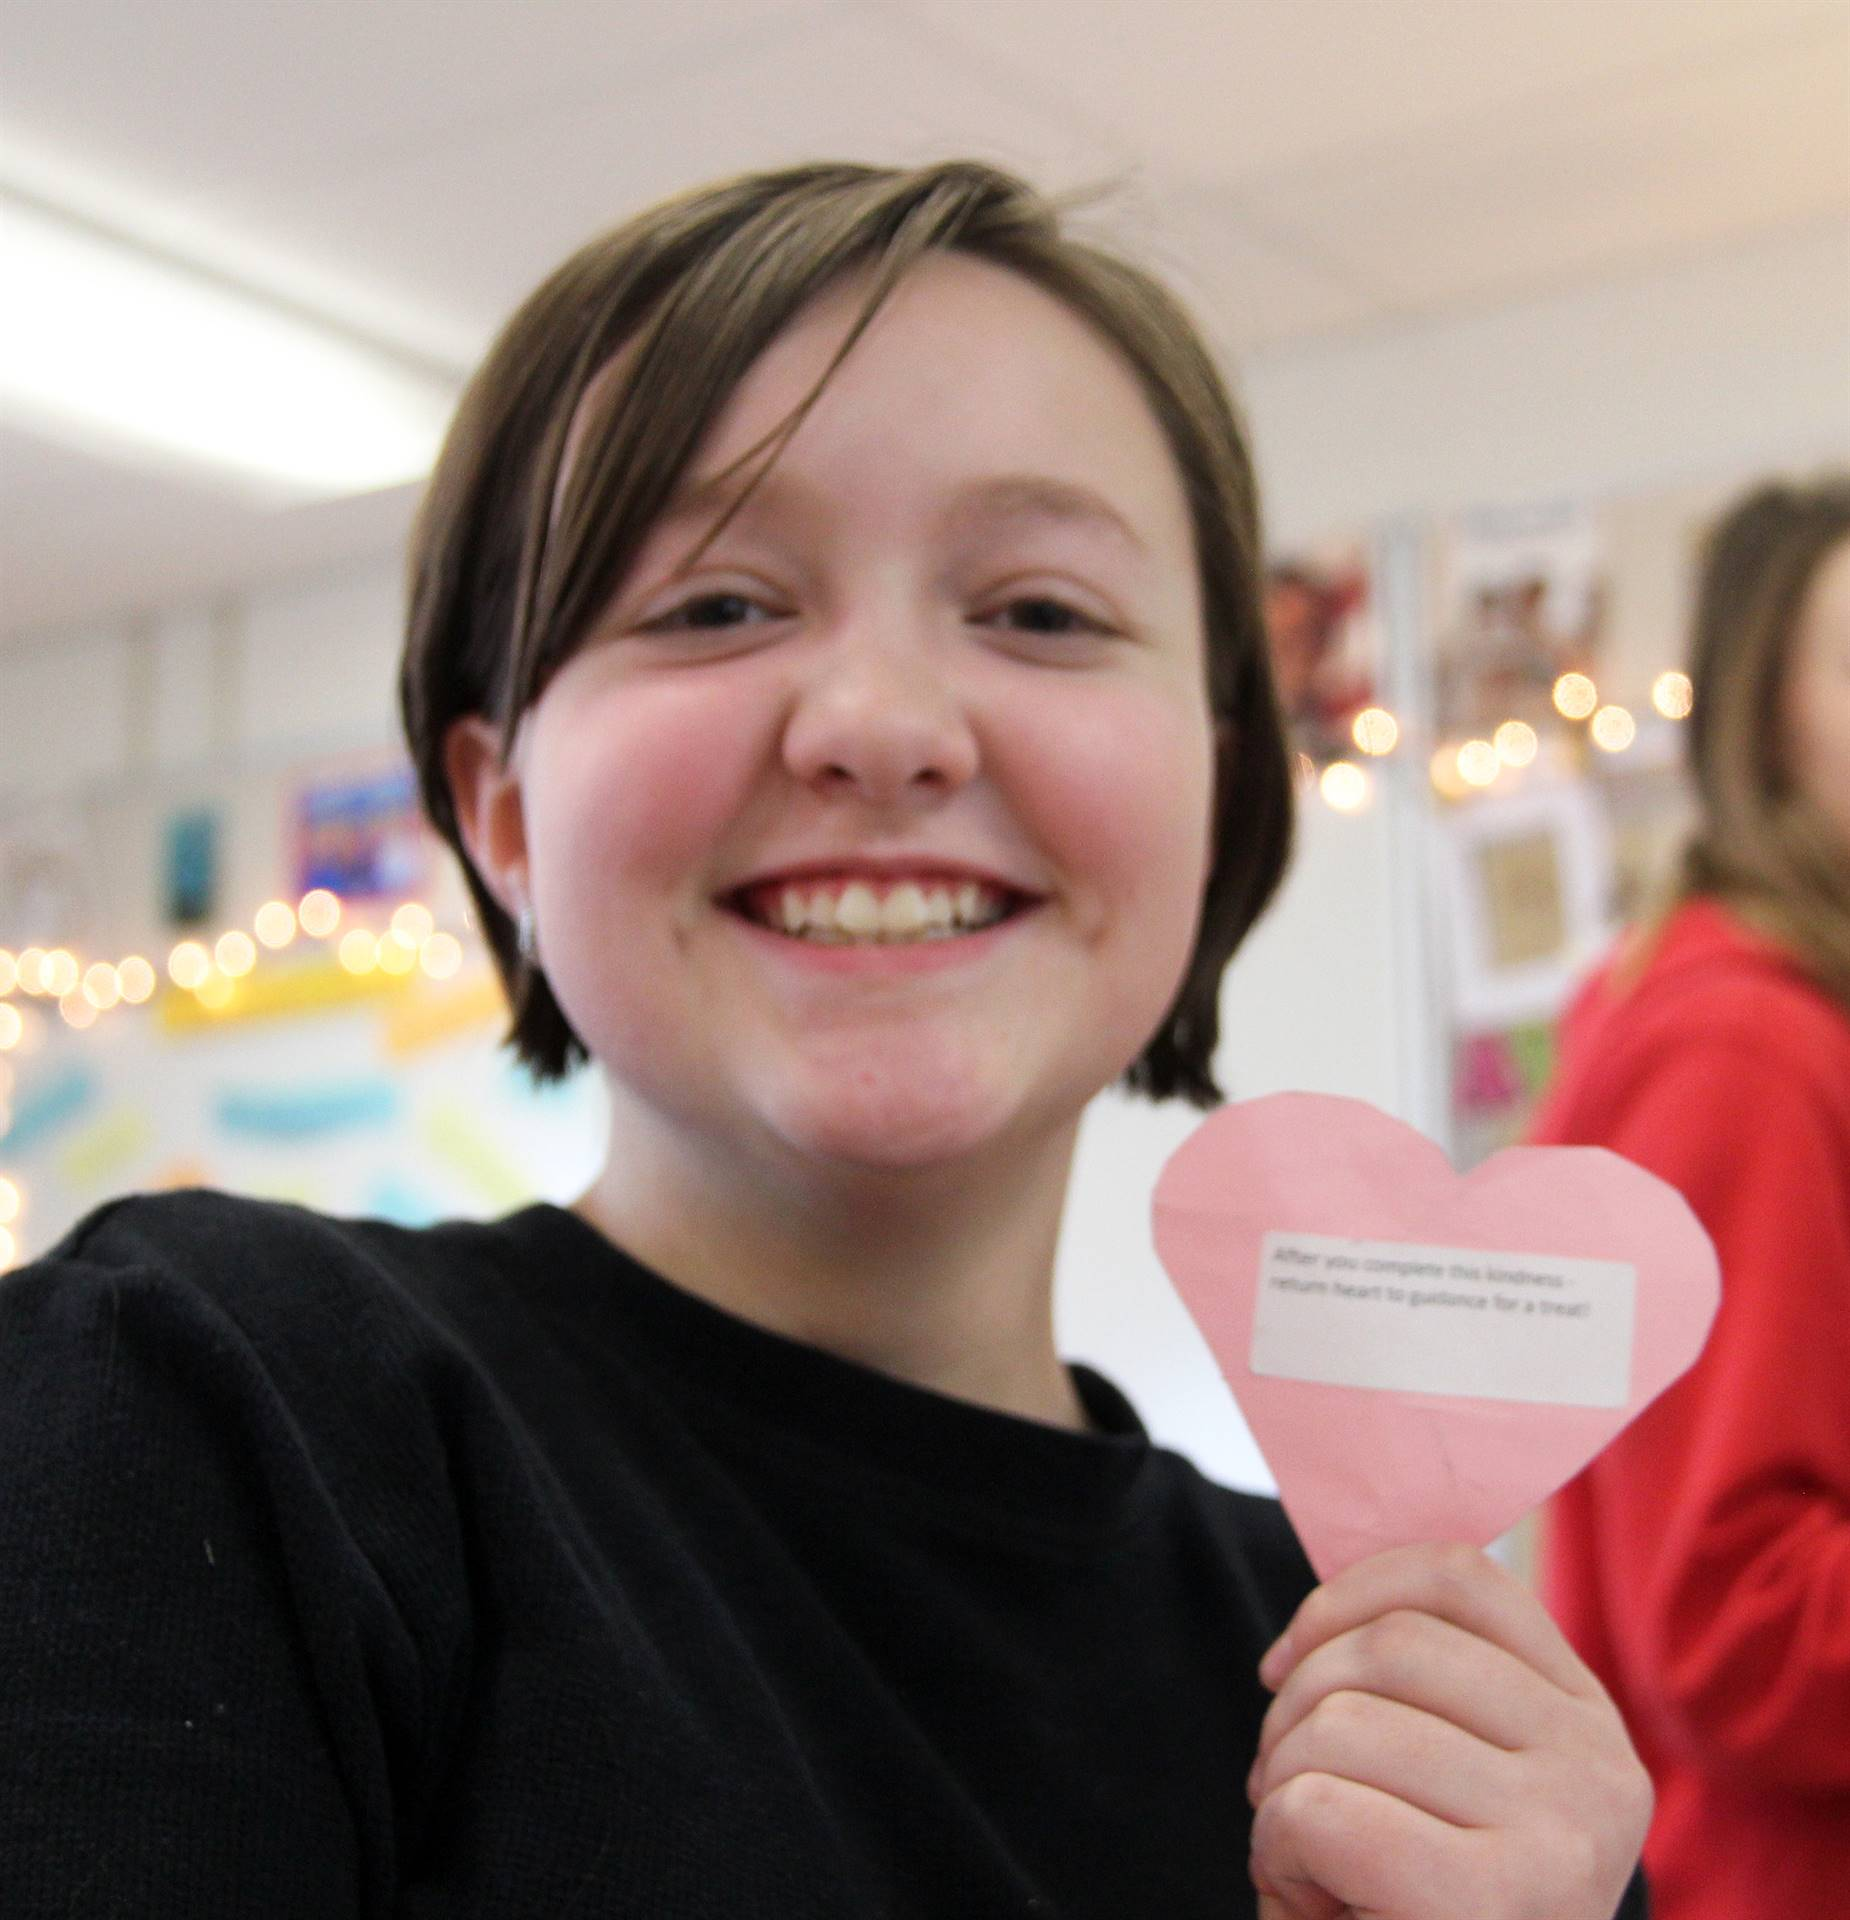 student smiling holding positive heart challenge